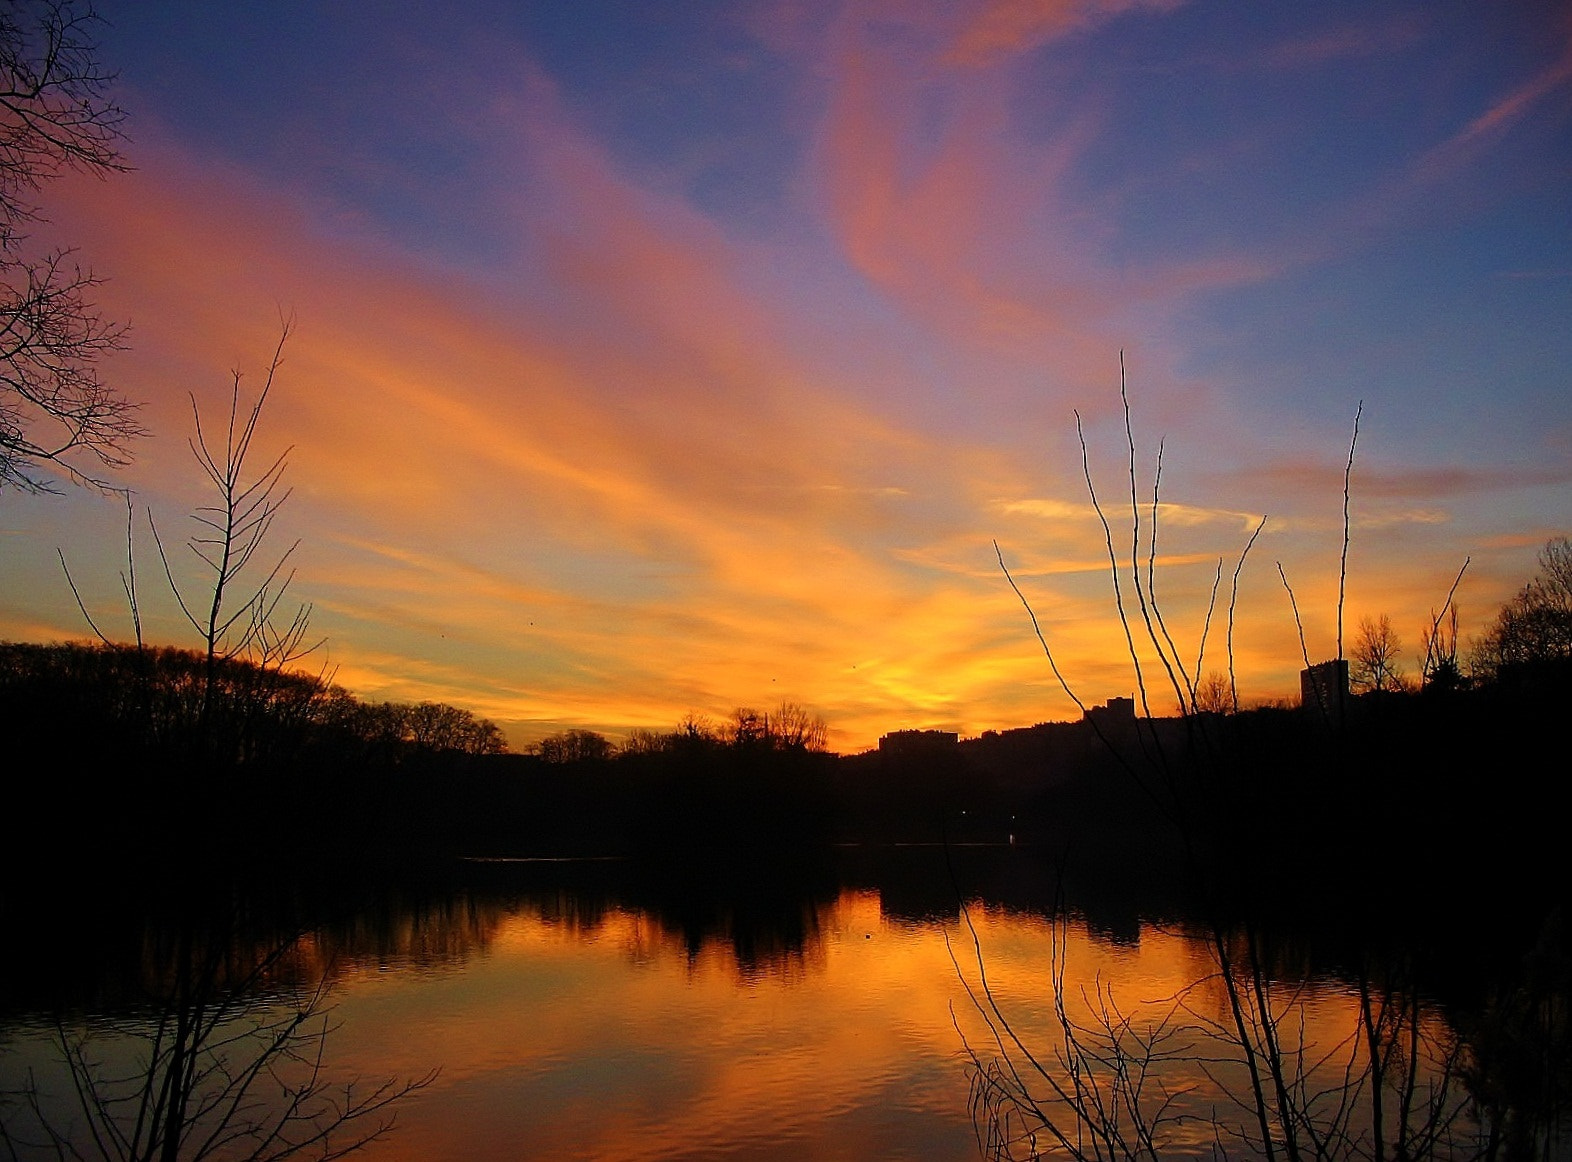 Photograph Sunset on Lyon by Marie BALLEFIN-GODEFROY on 500px